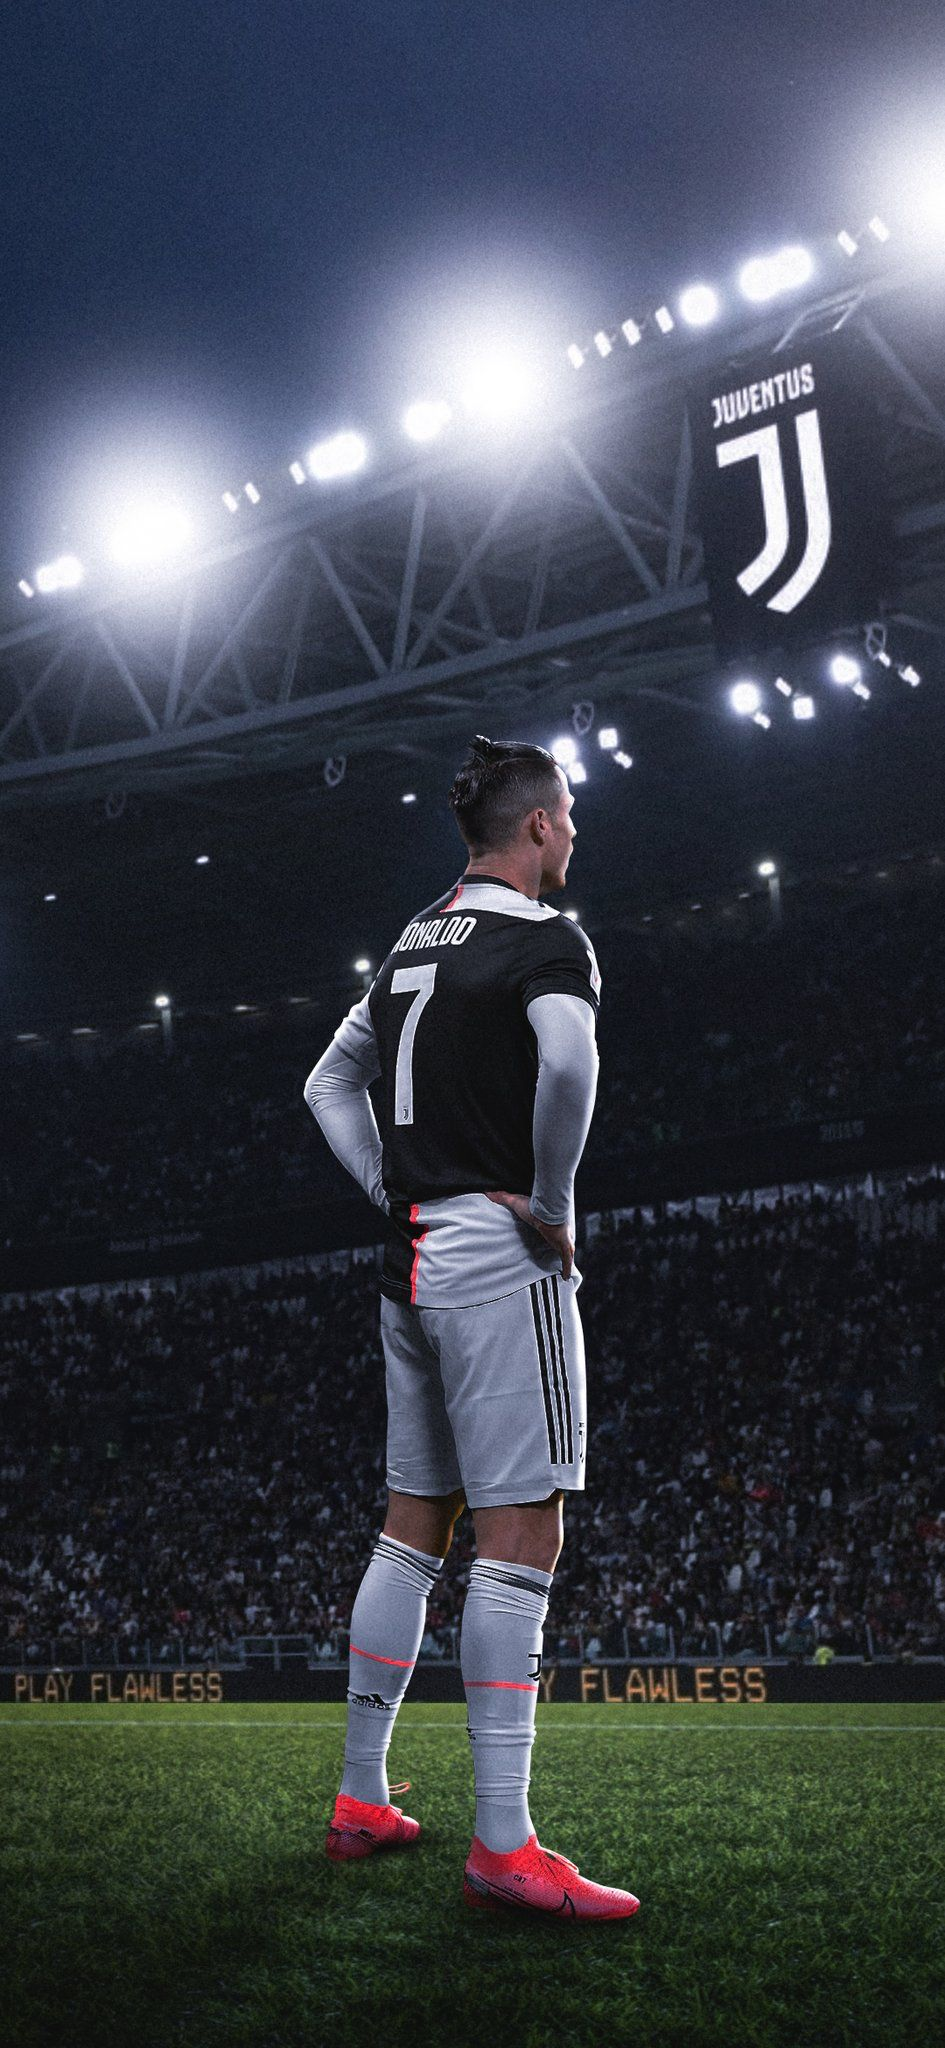 Pin by akash patil on CR7 LOVE in 2020 | Cristiano ronaldo ...